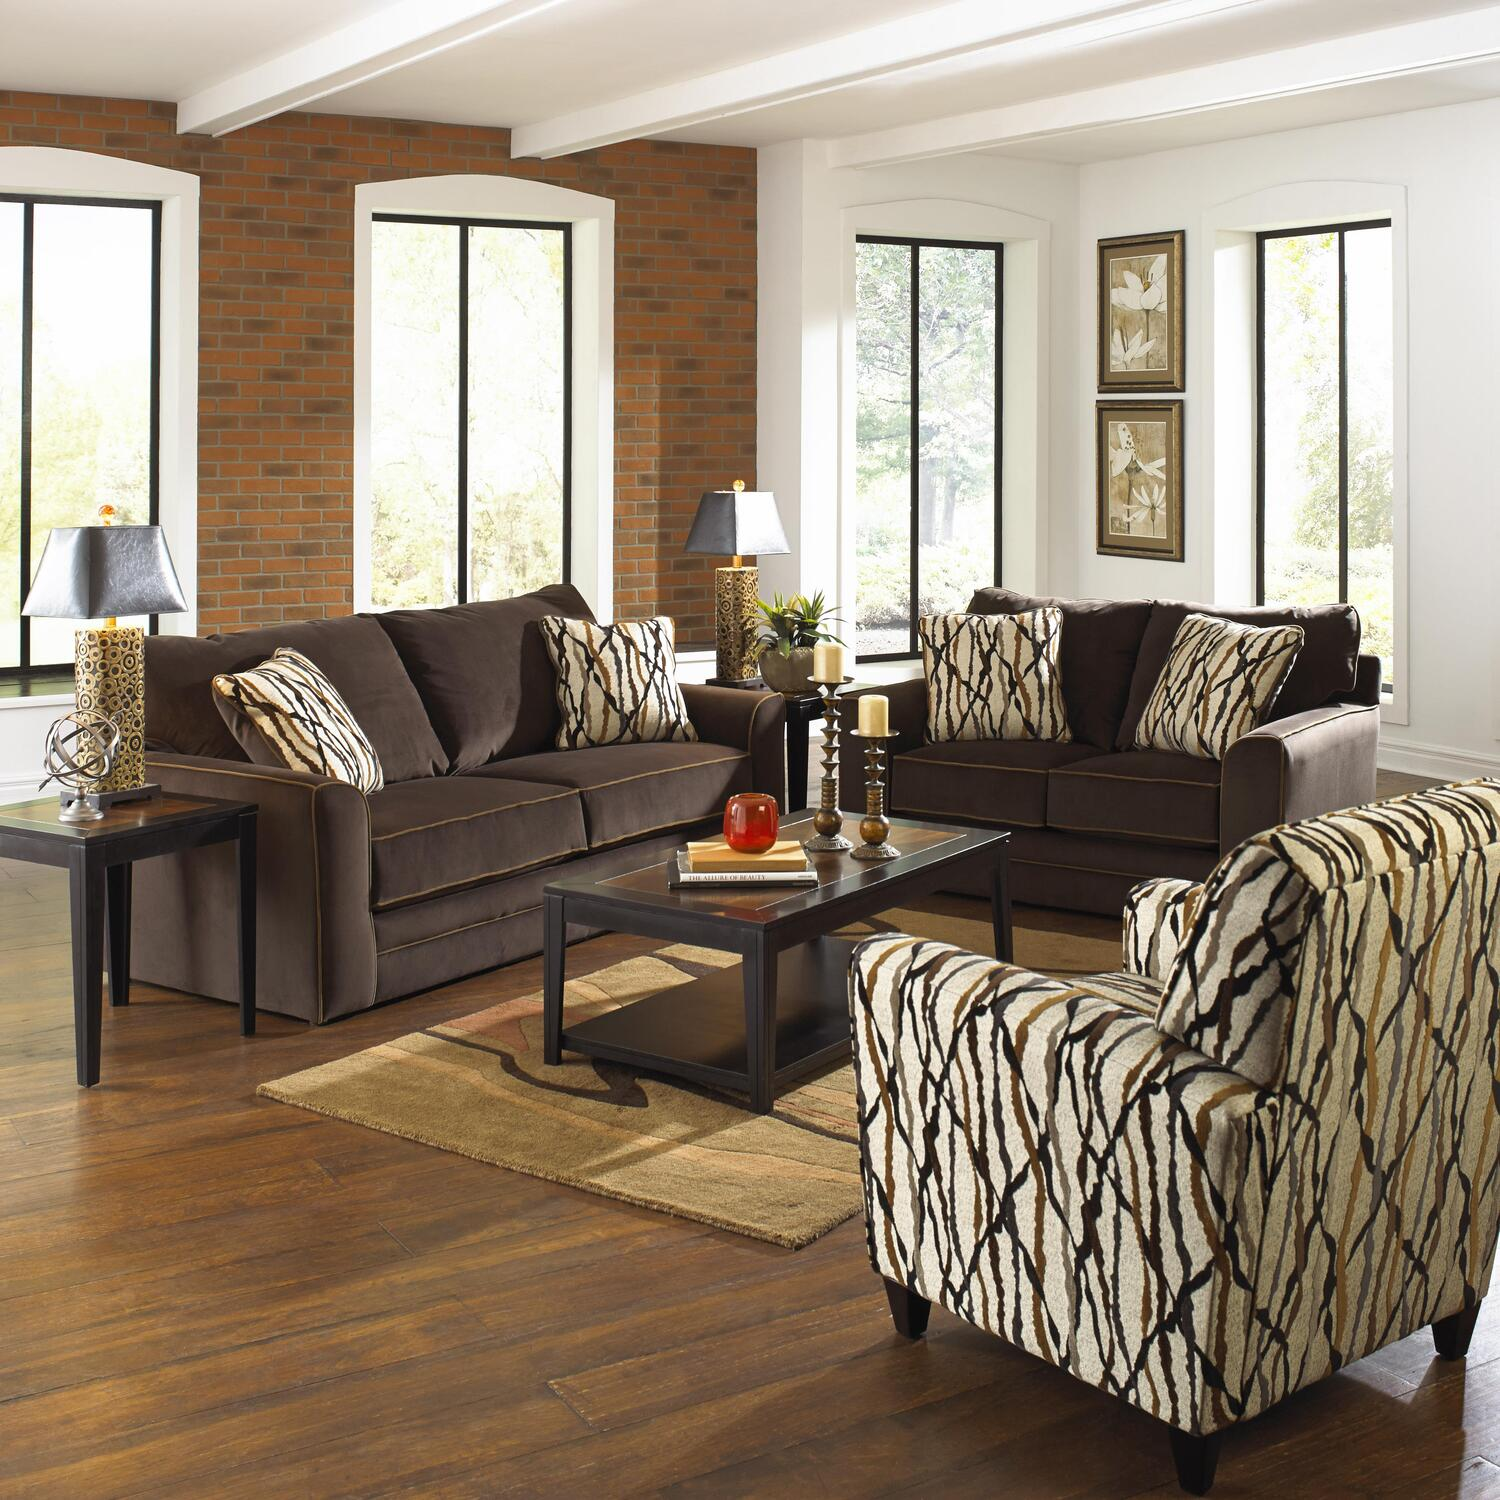 Image Result For Jackson Lawson Sectional Double Chaise Sofa